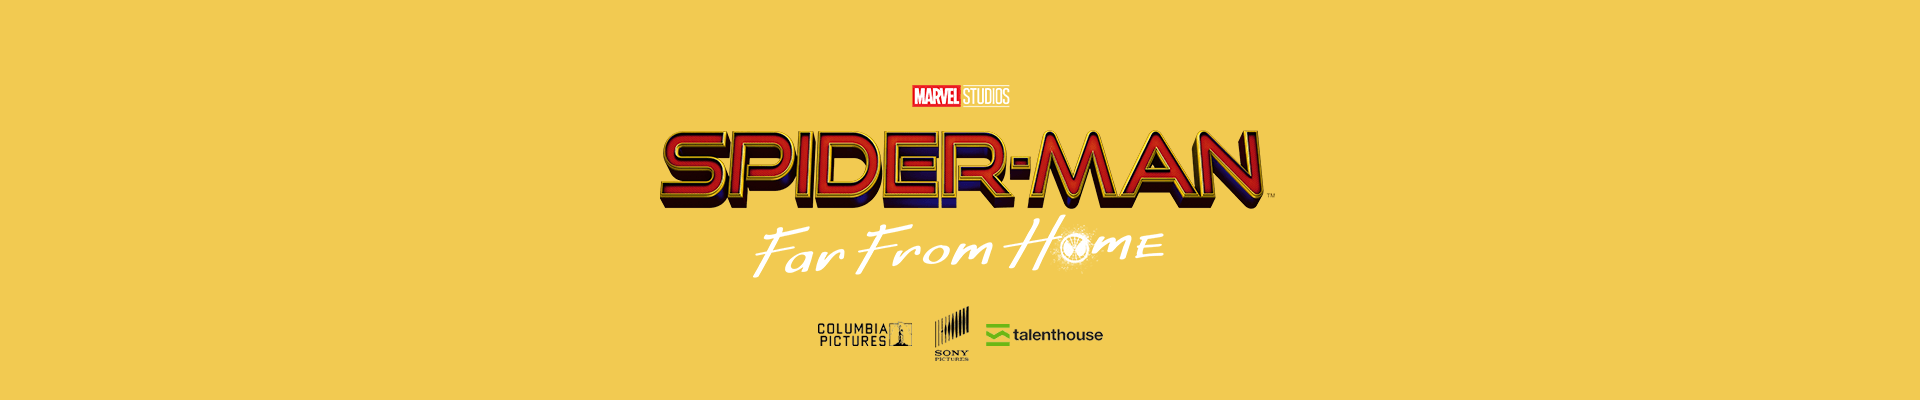 Spider-Man-Far-From-Home-Alternative-Movie-Poster-design